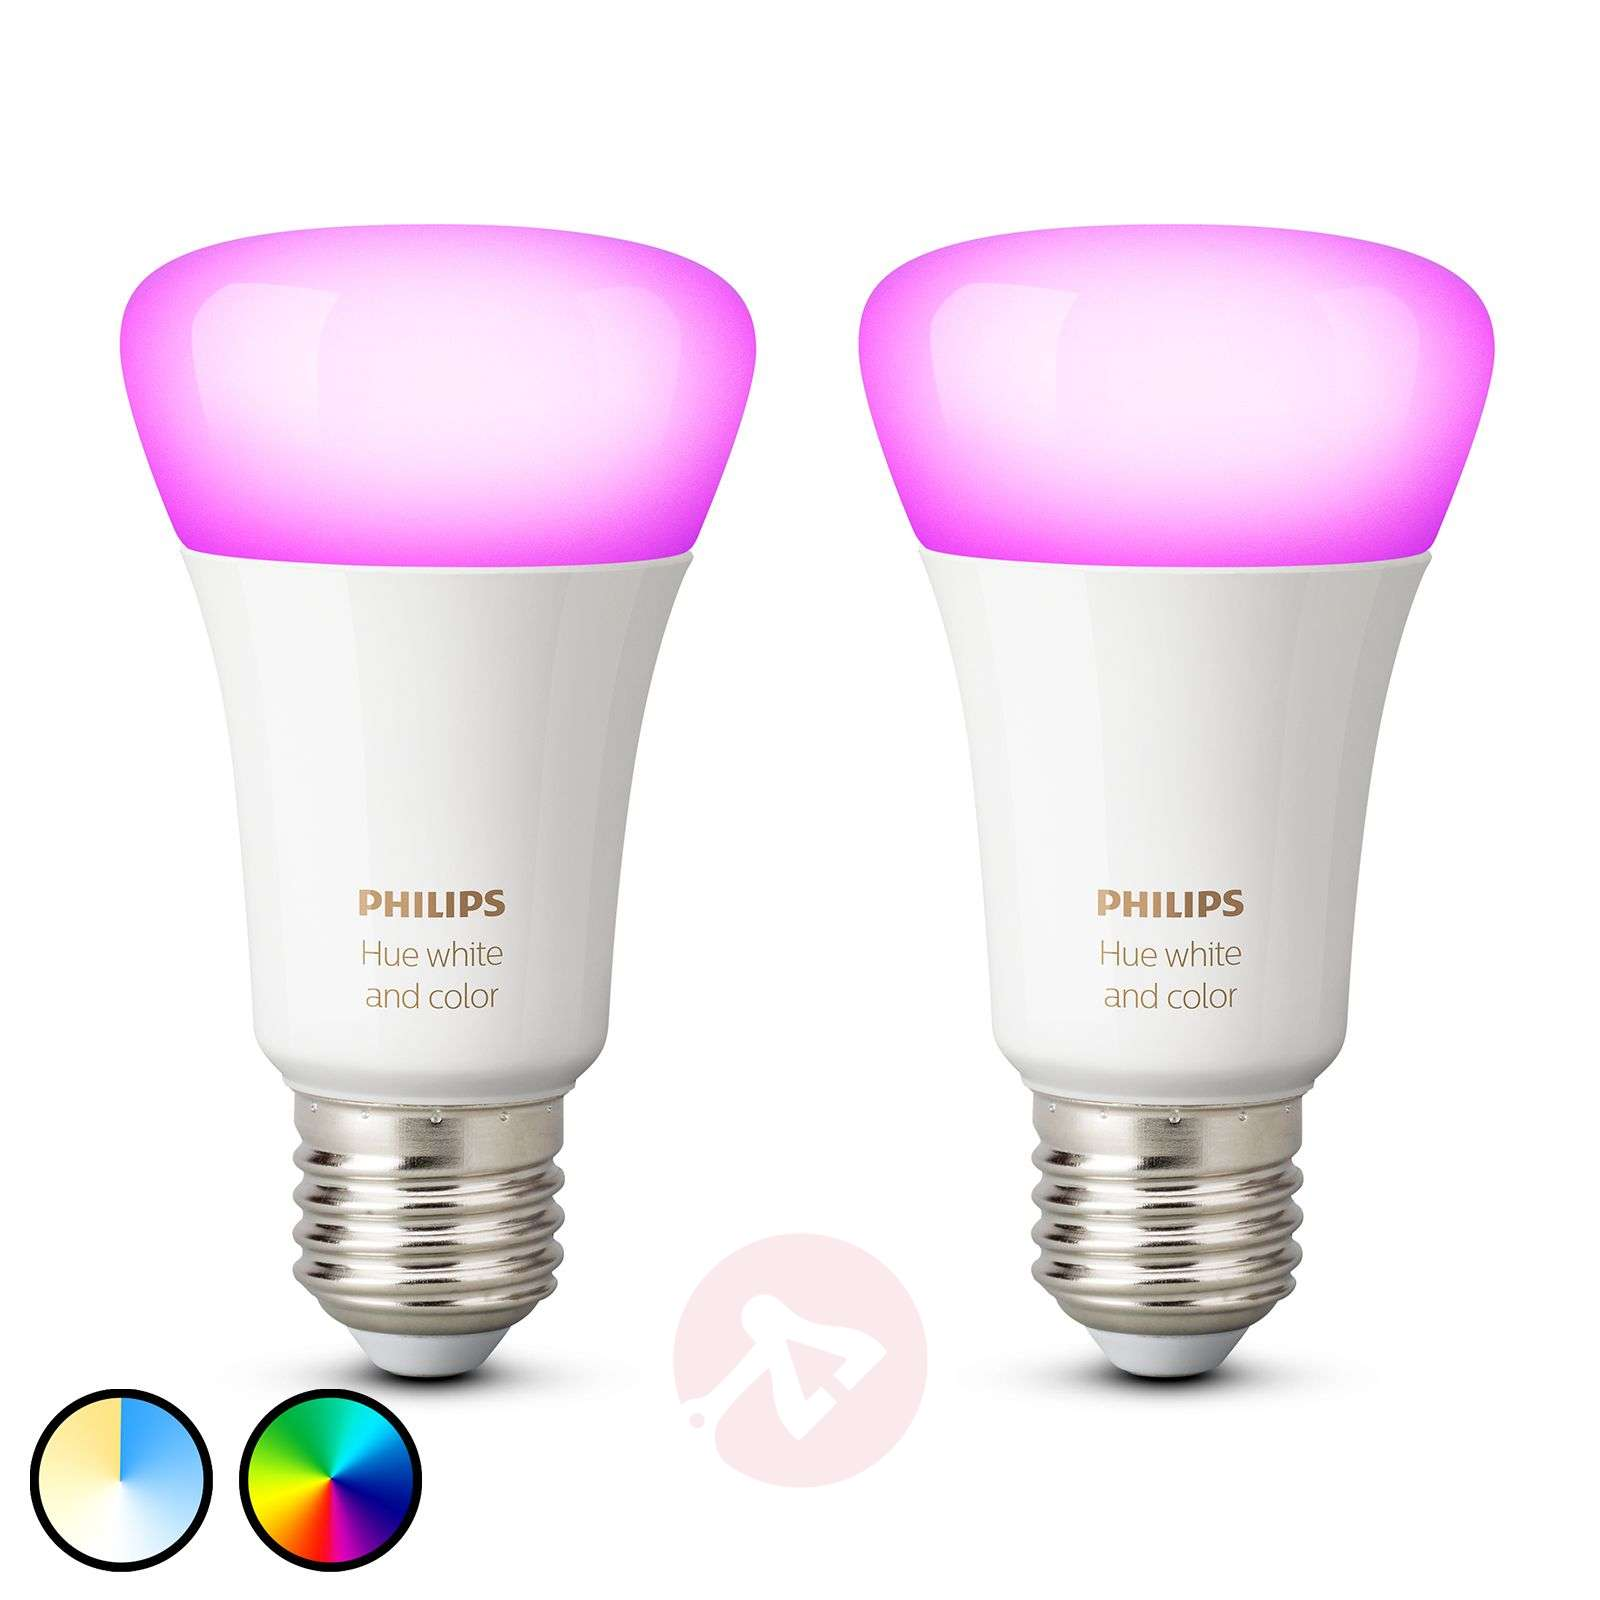 Philips Hue White and Color Ambiance 9 W E27, par 2-7534124-01